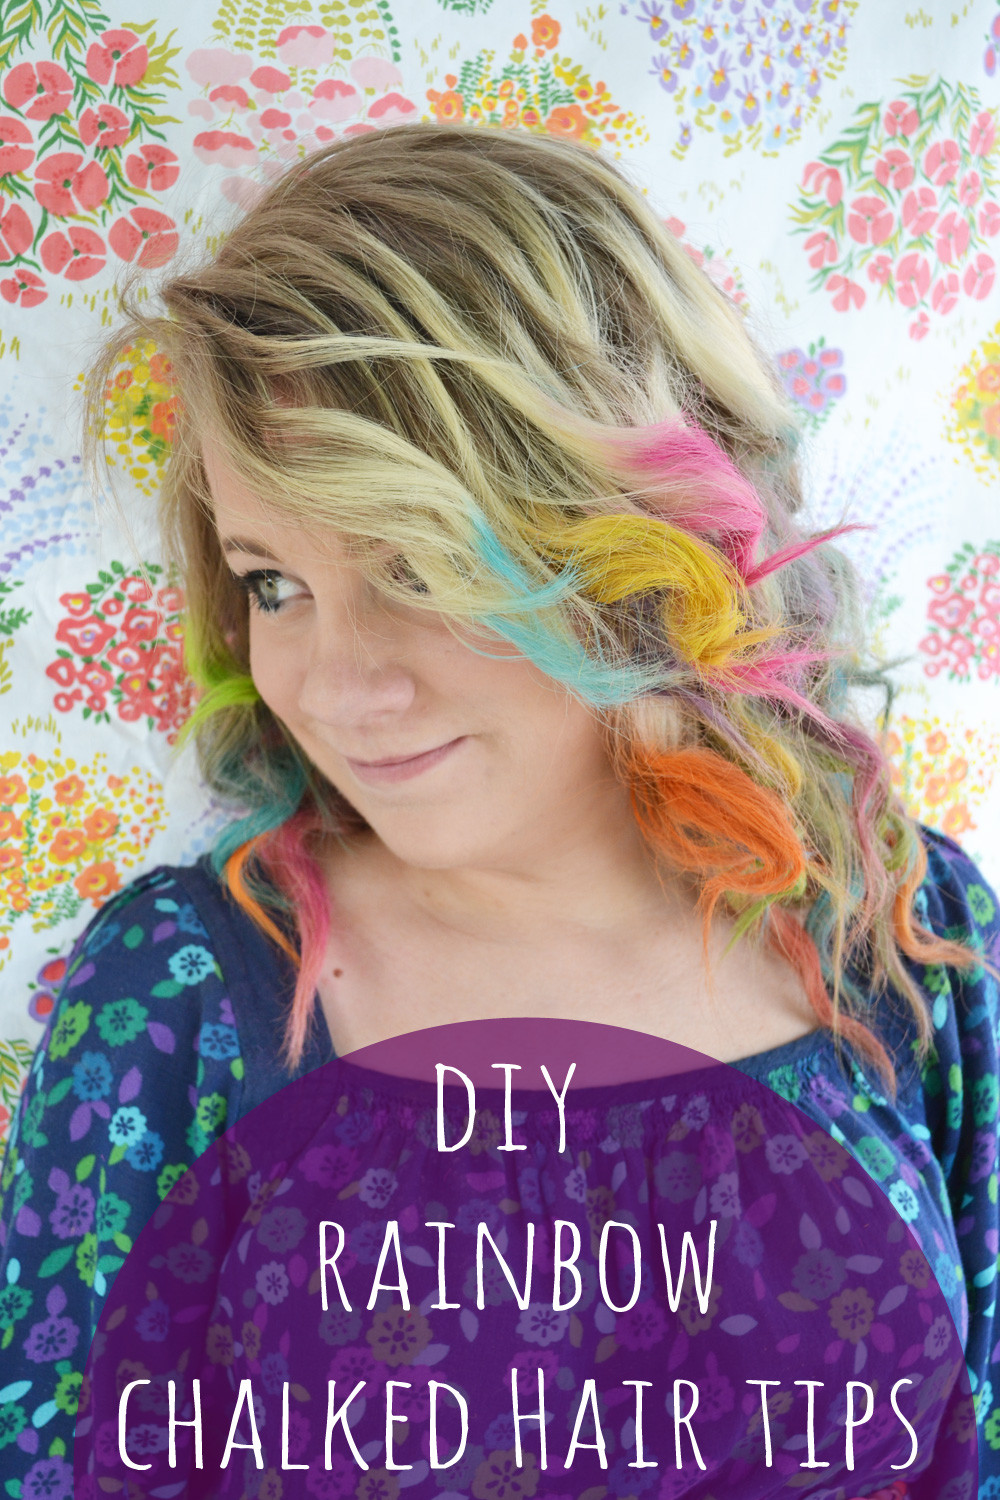 Best ideas about DIY Hair Chalking . Save or Pin Run 2 the Wild DIY RAINBOW HAIR CHALKED TIPS Now.